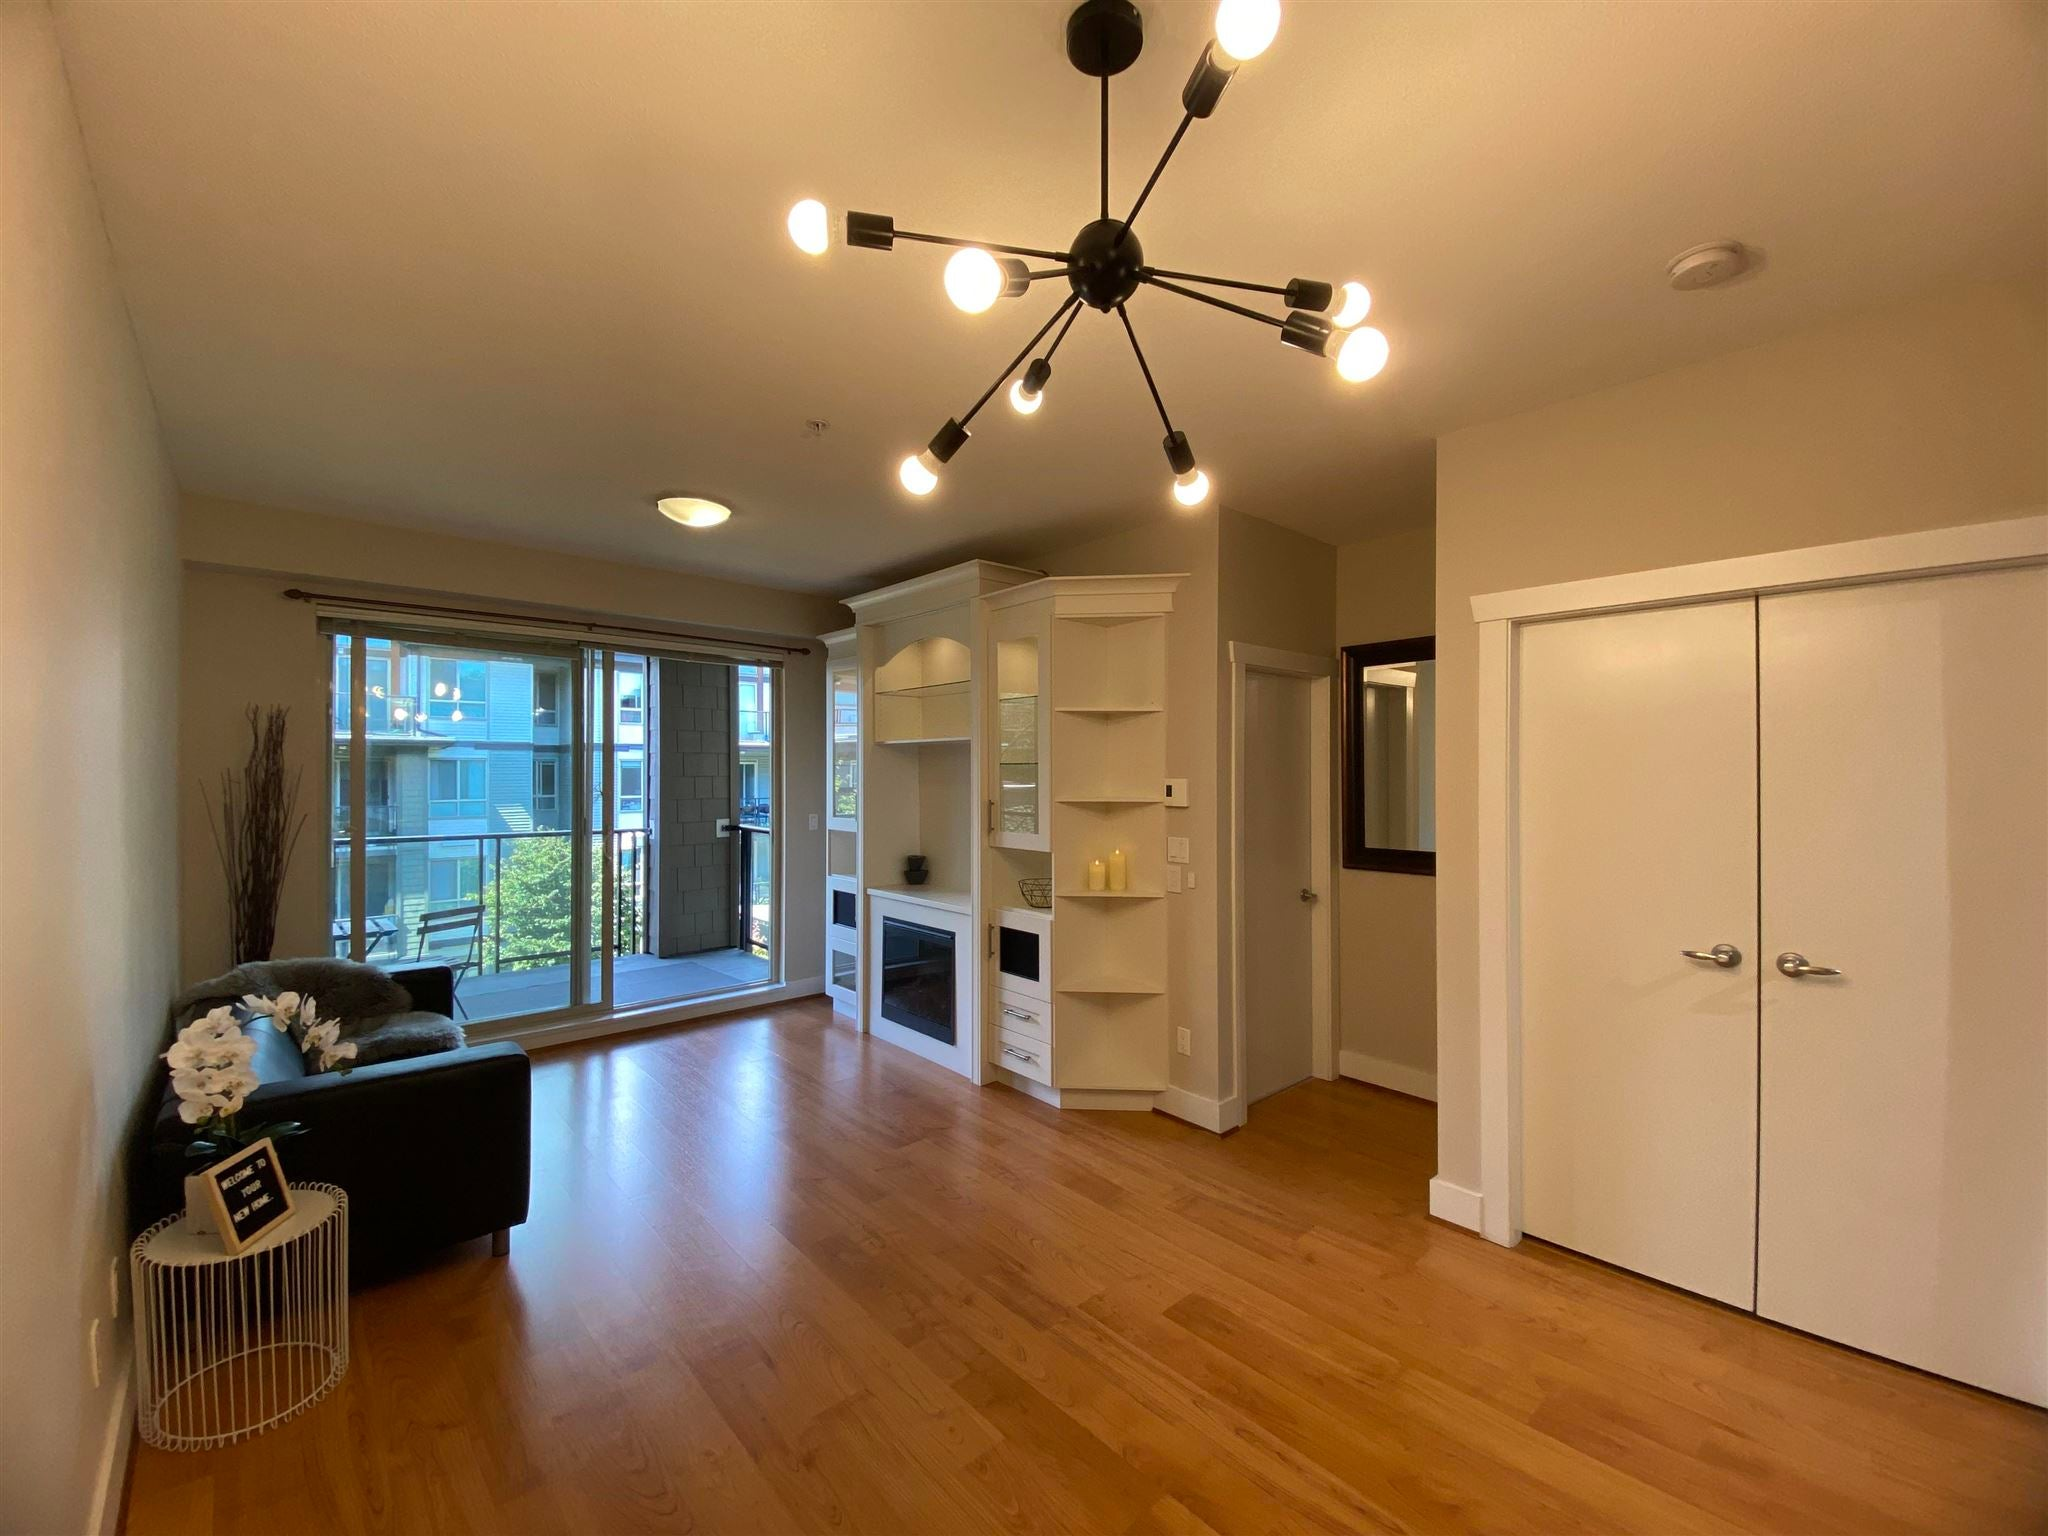 304 7428 BYRNEPARK WALK - South Slope Apartment/Condo for sale, 1 Bedroom (R2604124) - #5